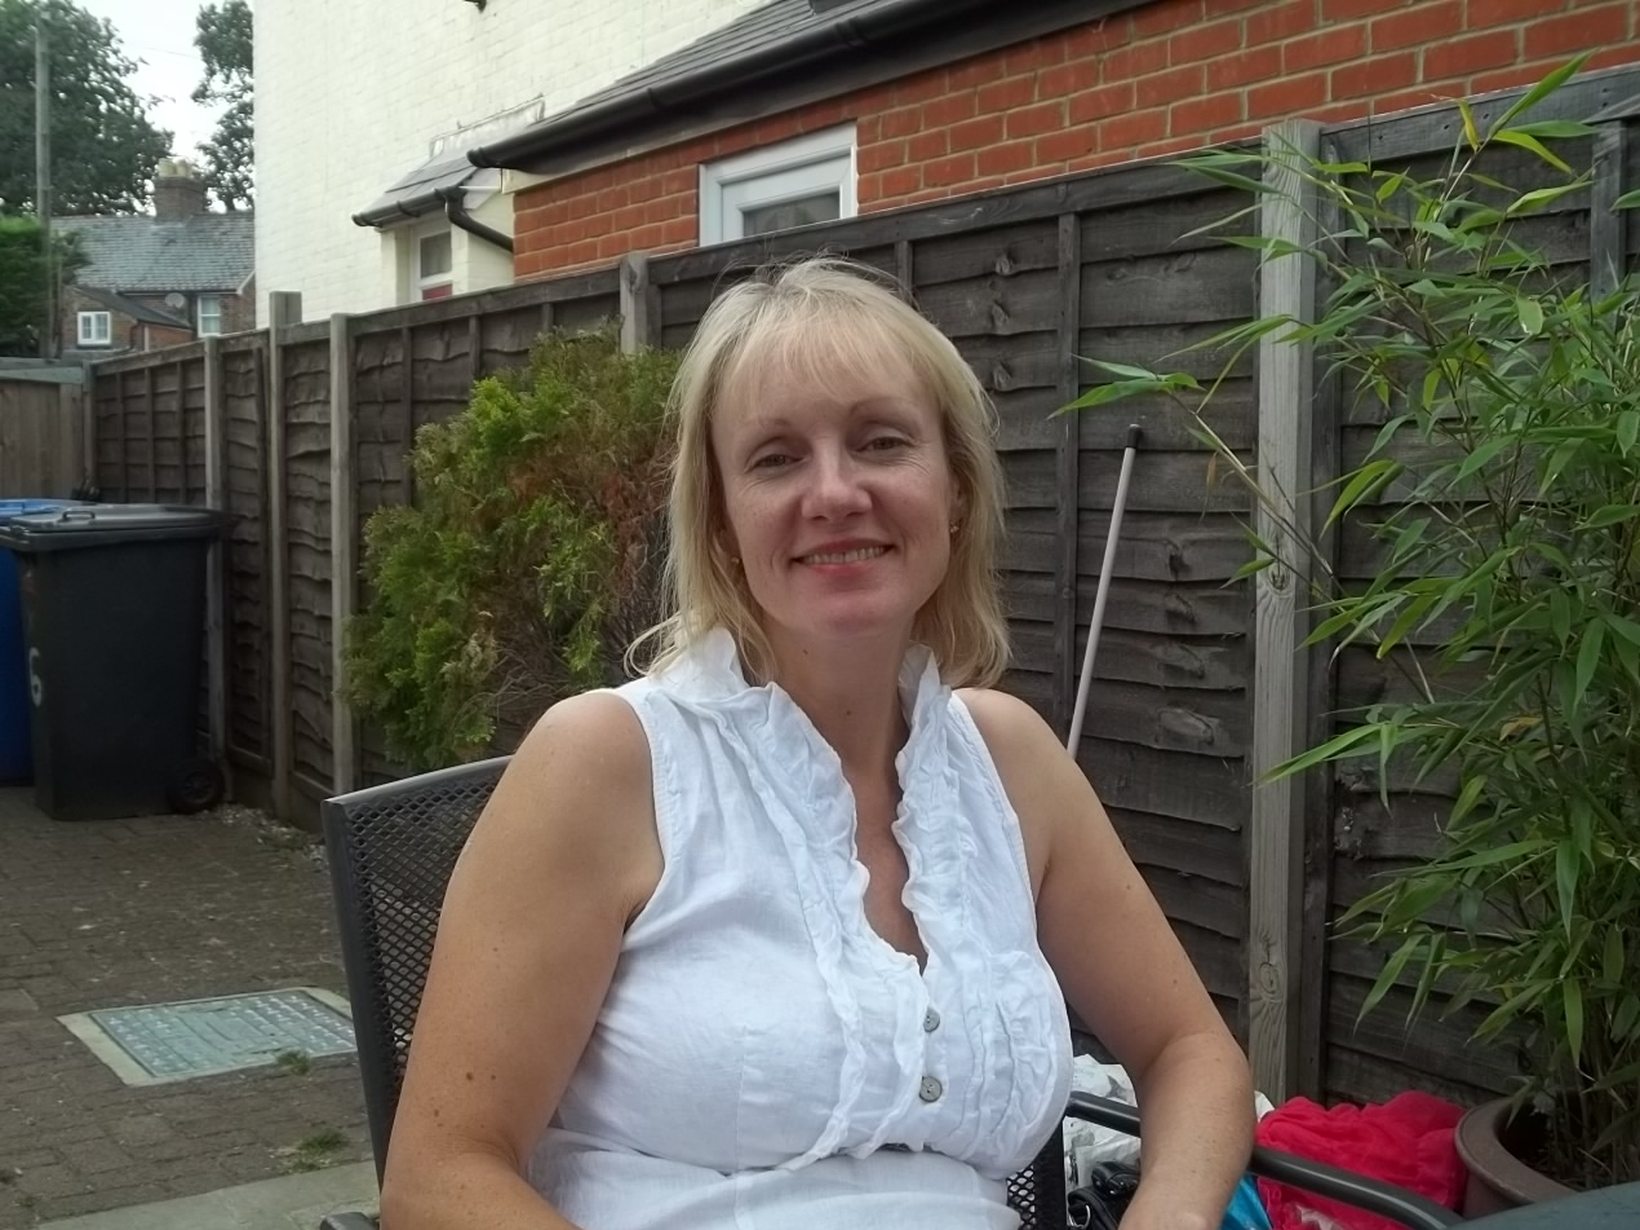 Mary ann from Ascot, United Kingdom